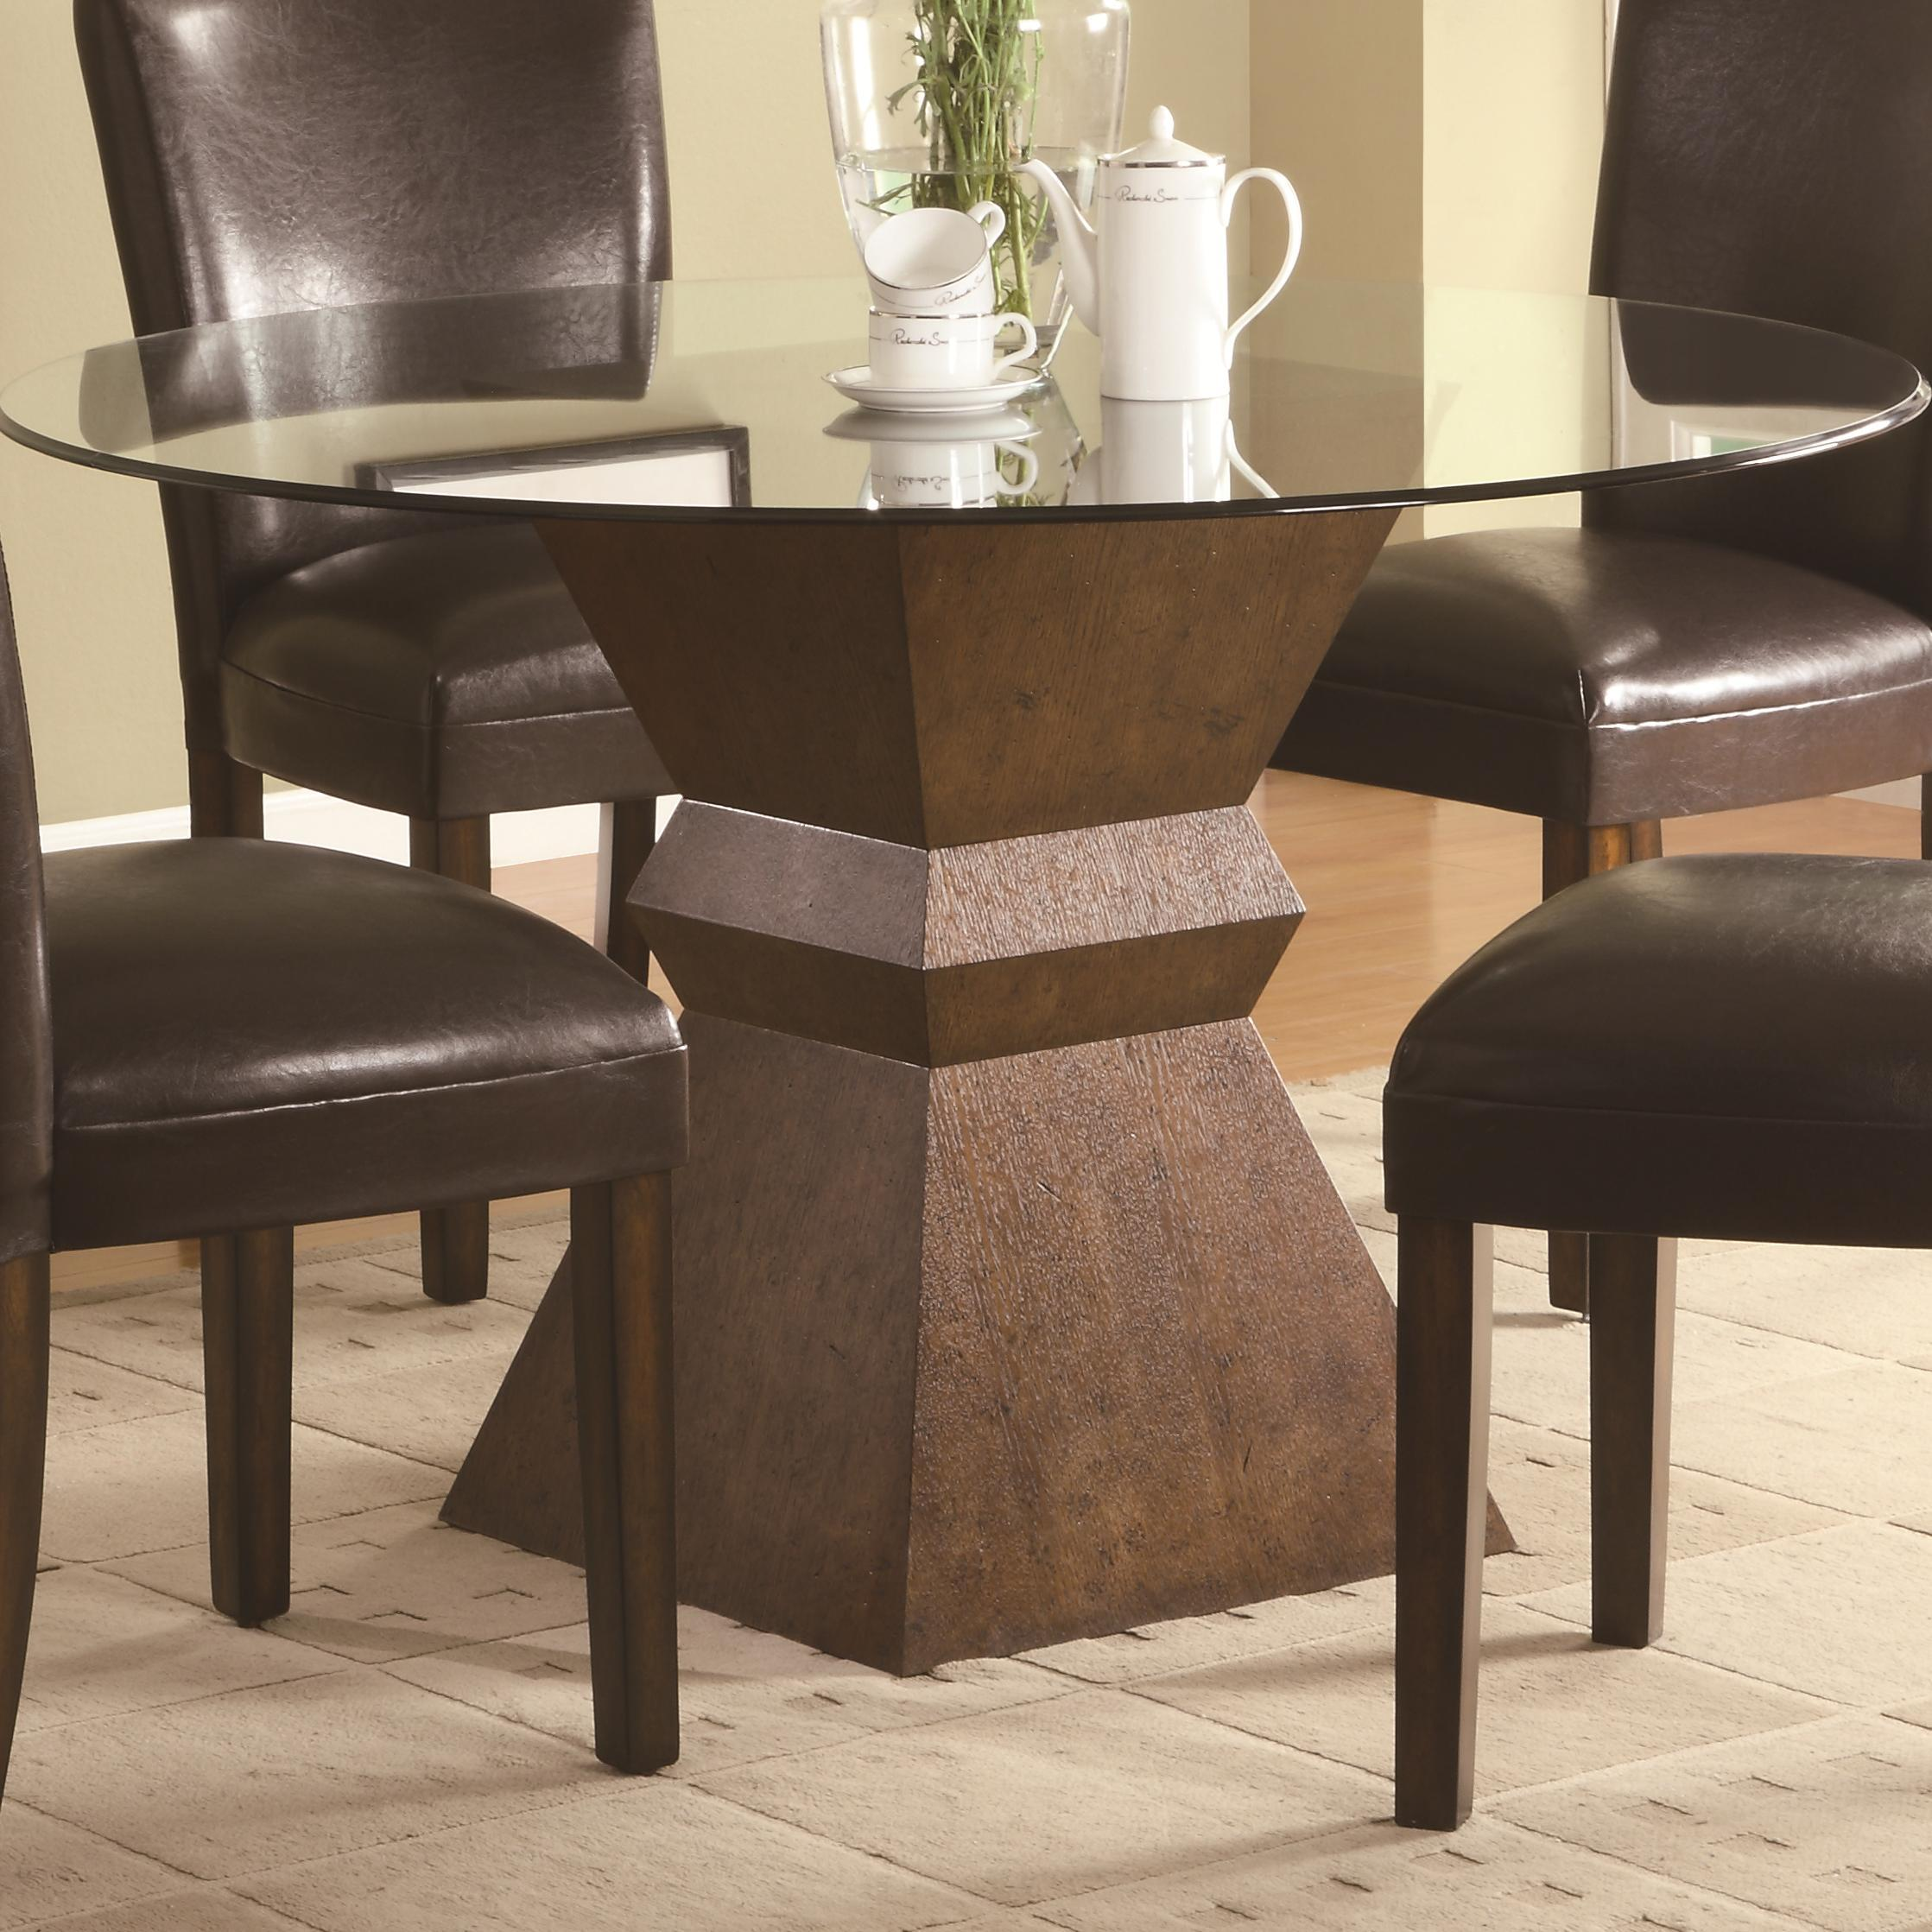 Beautiful Pedestal Table Base for Glass Top HomesFeed : Simple Round Pedestal Table Base For Glass Top With Brown Leather Chairs from homesfeed.com size 2237 x 2237 jpeg 403kB